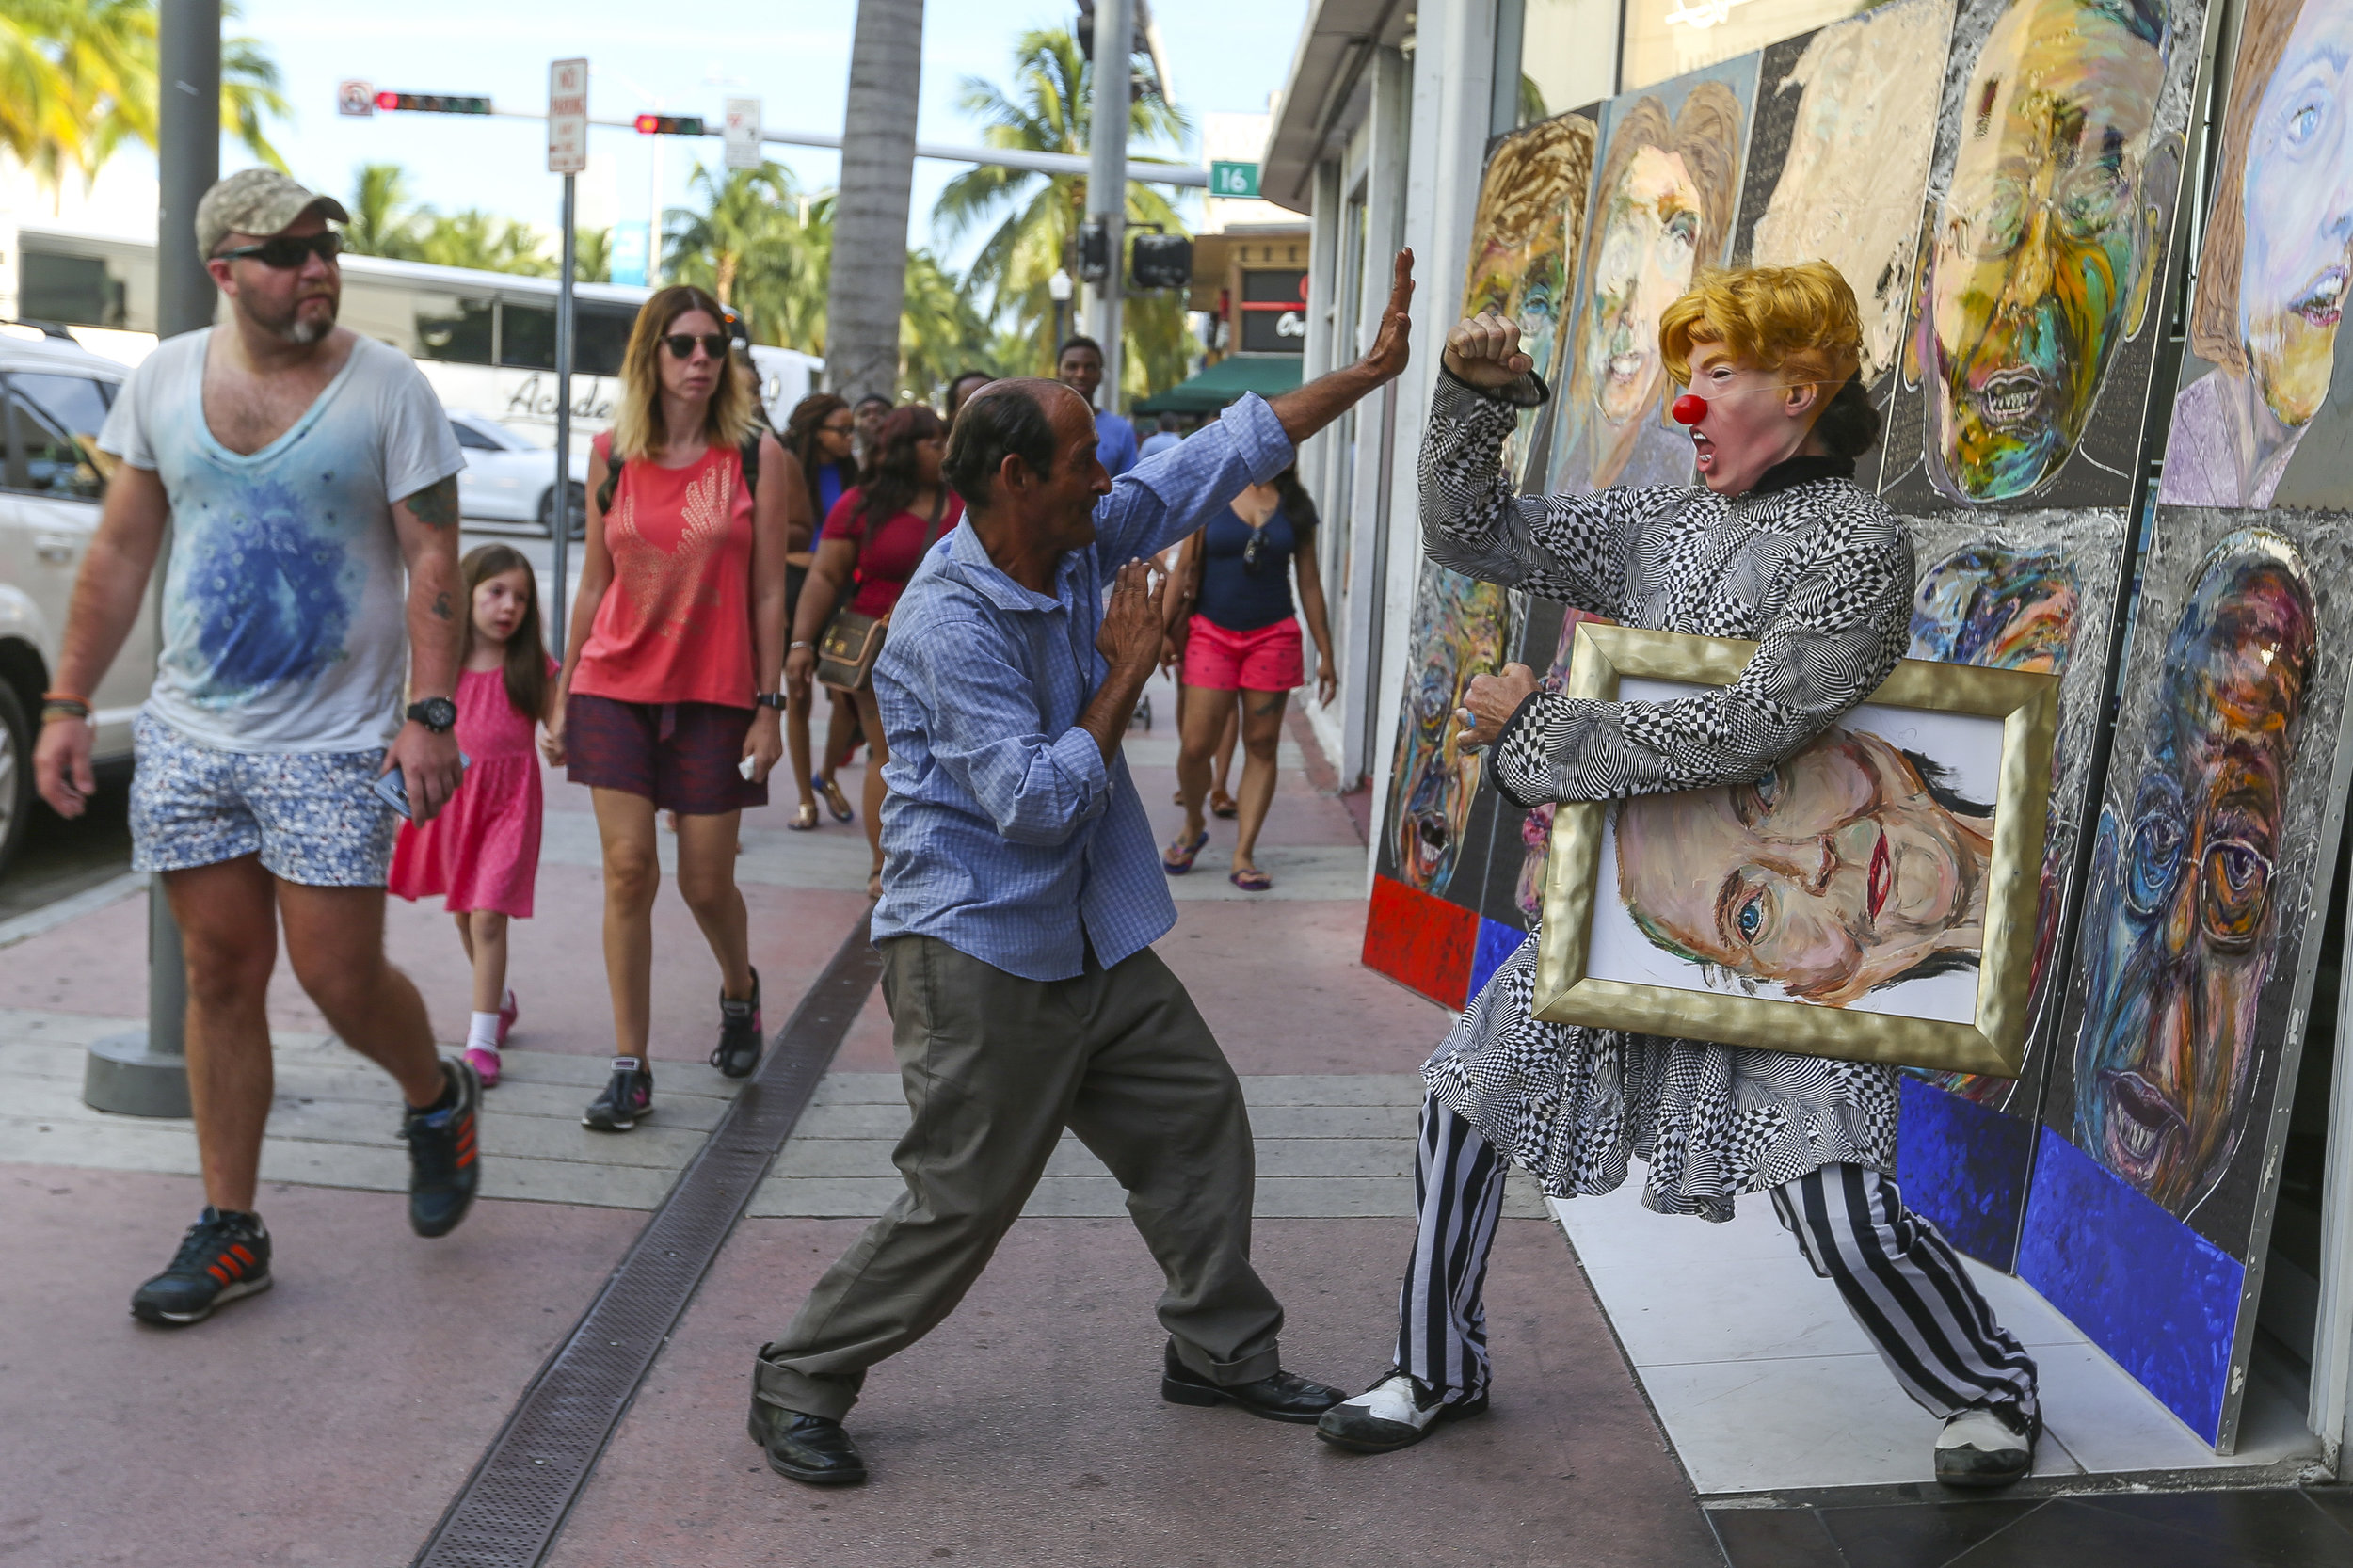 A clown posing as presidential candidate Donald Trump play fights with a pedestrian in Miami Beach outside of artist Huong's studio on Friday, July 8, 2016.